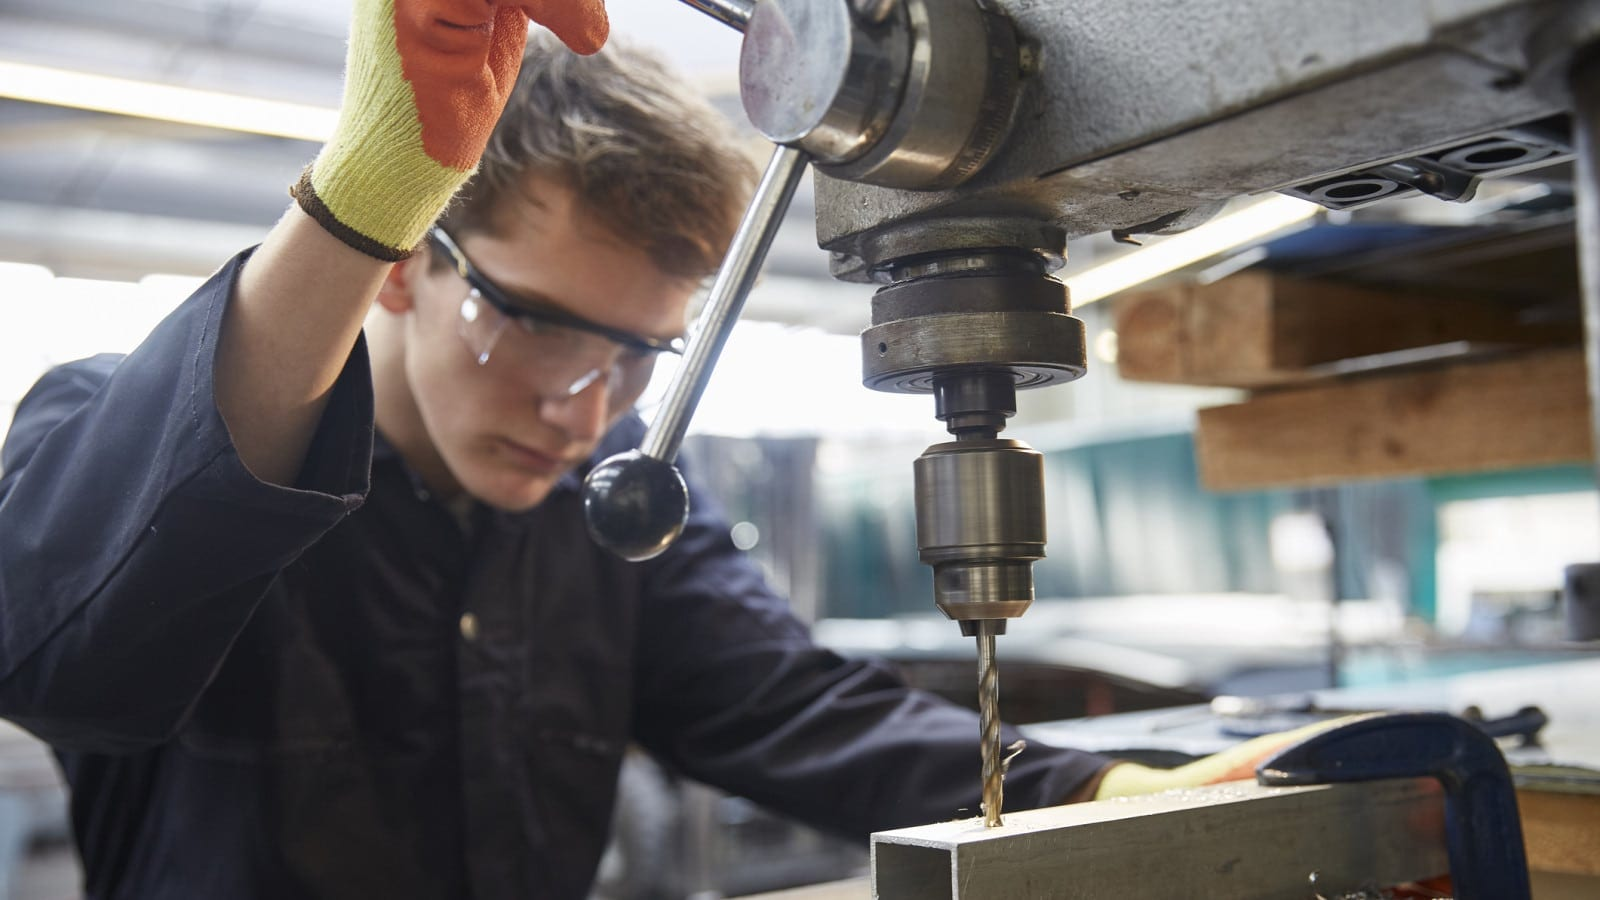 Welder Wearing Protective Eyeglasses Working With Metal